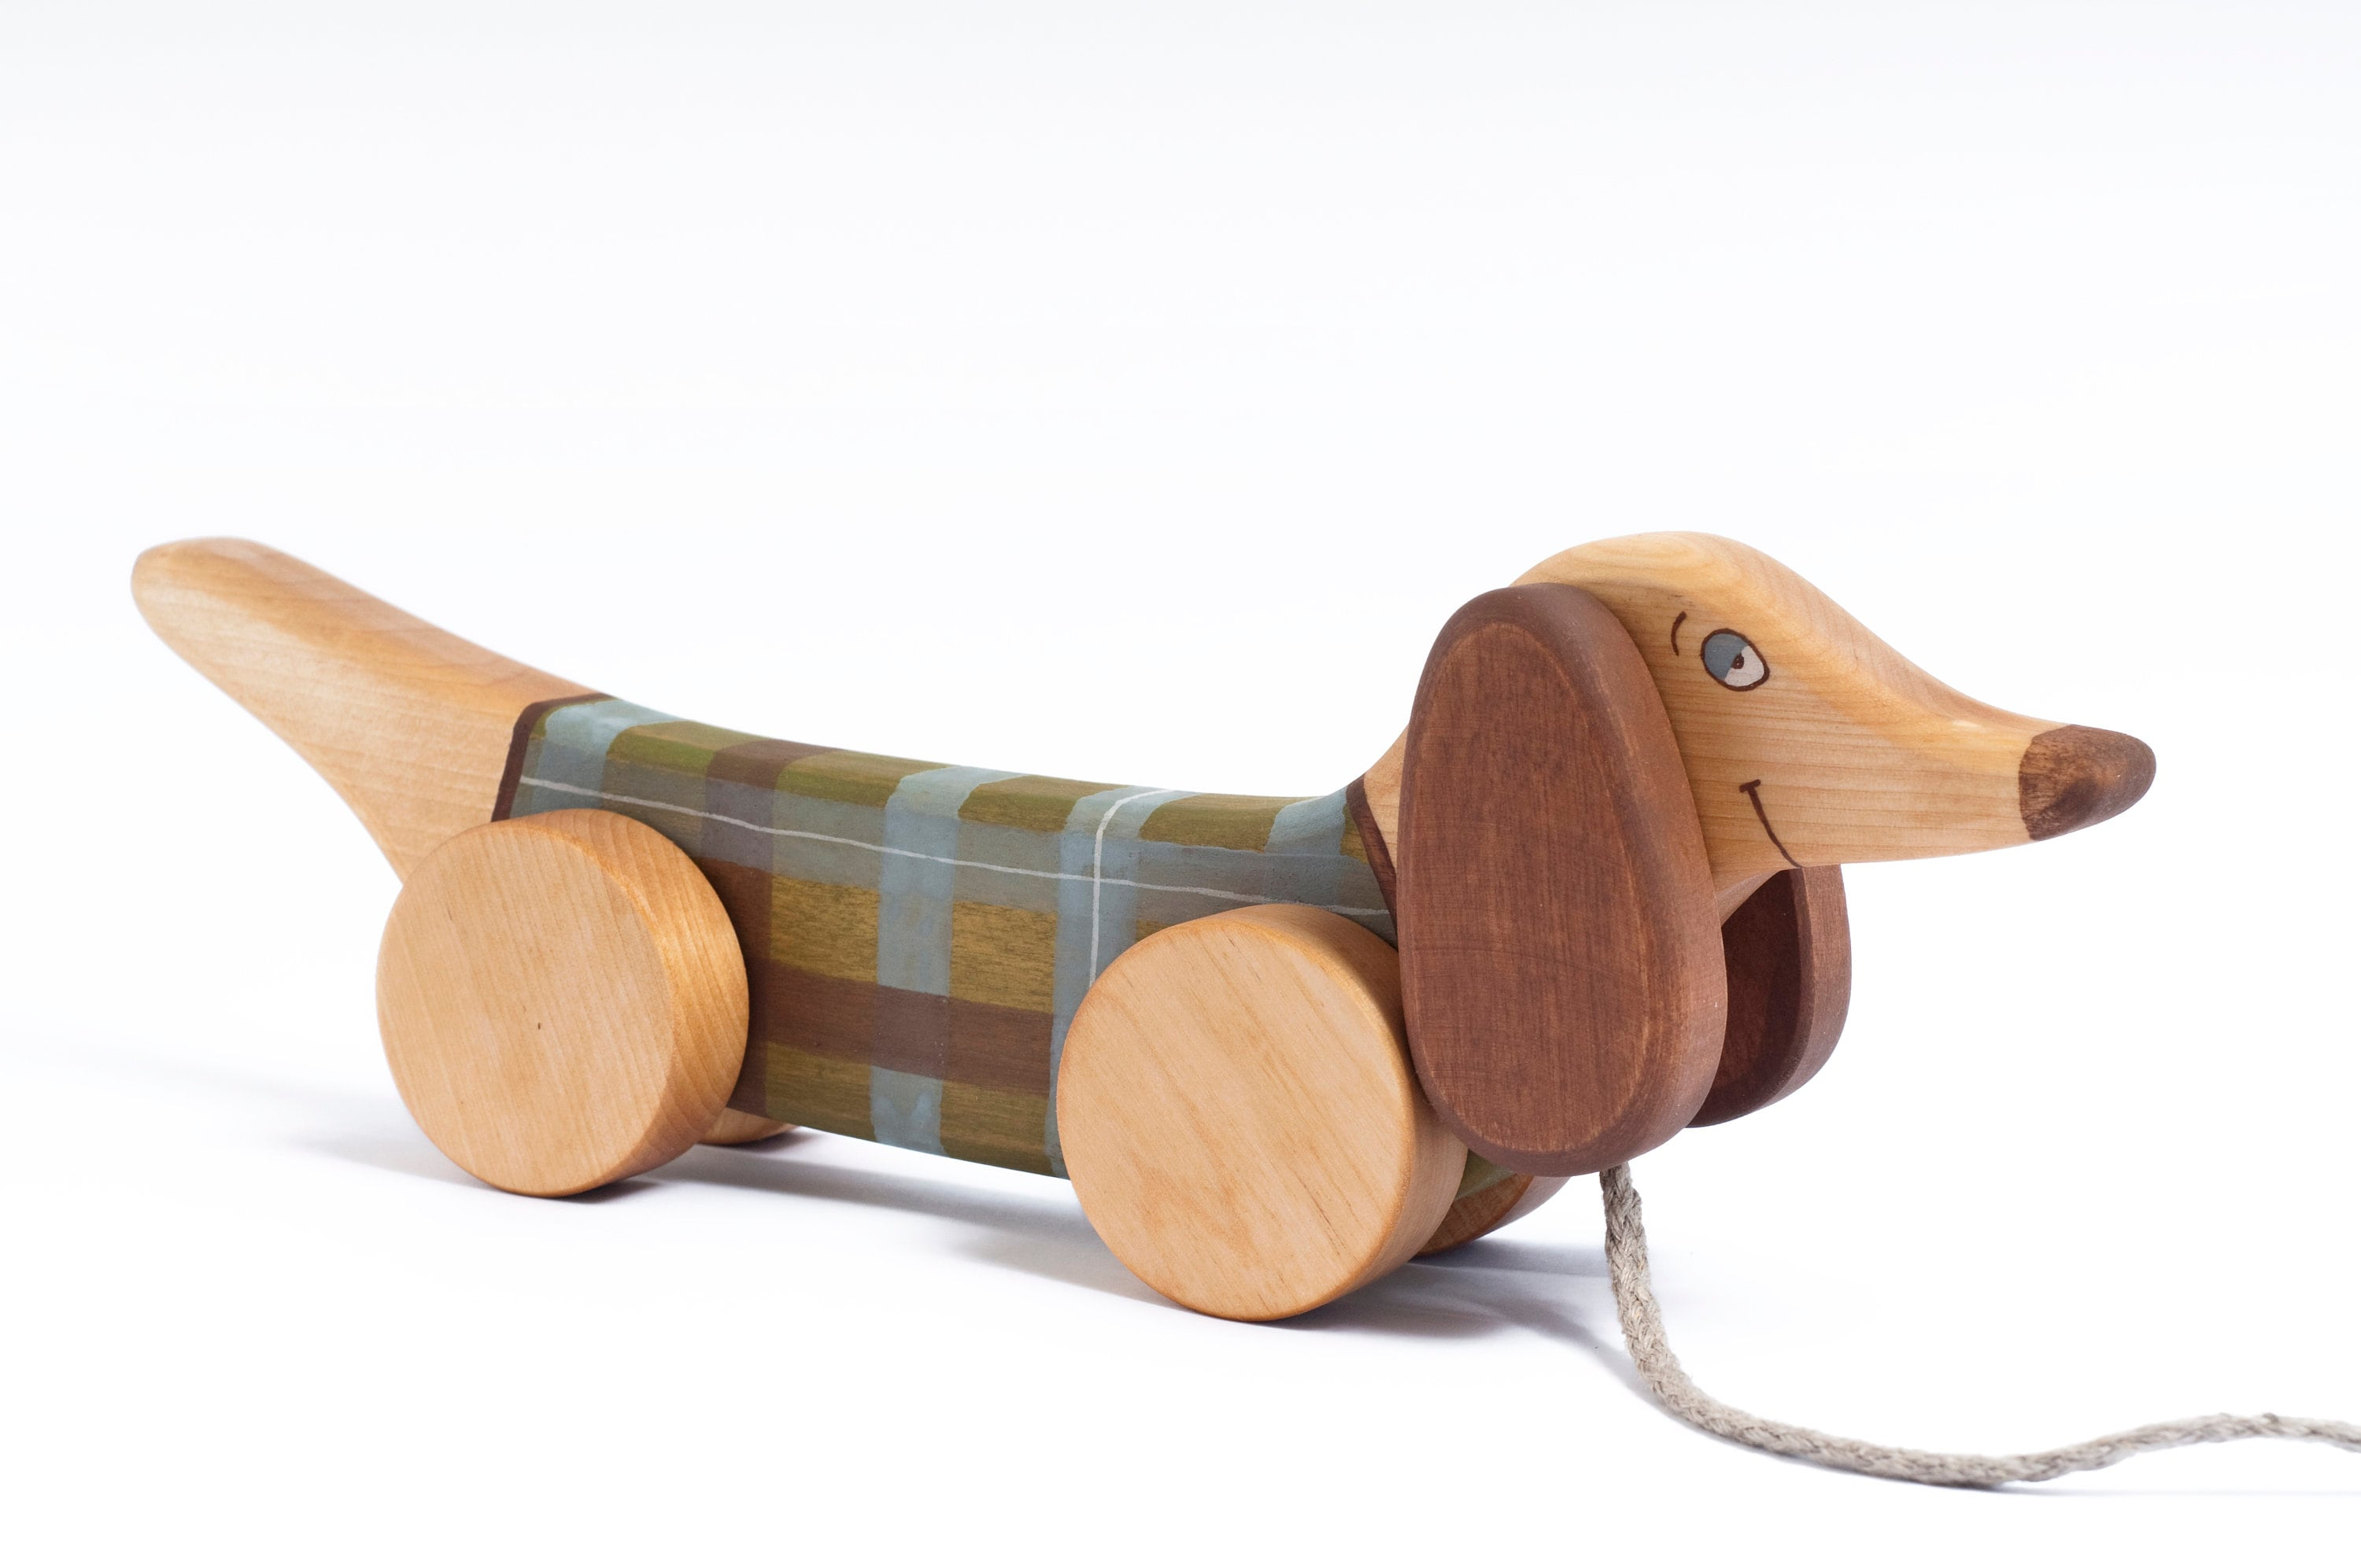 Pull Dog, Kids Wooden Toy Dog, Pull Toy Dog, Wood Toddlers Toy, Wood Toy, Wooden Pull Toys, Wooden Dachshund